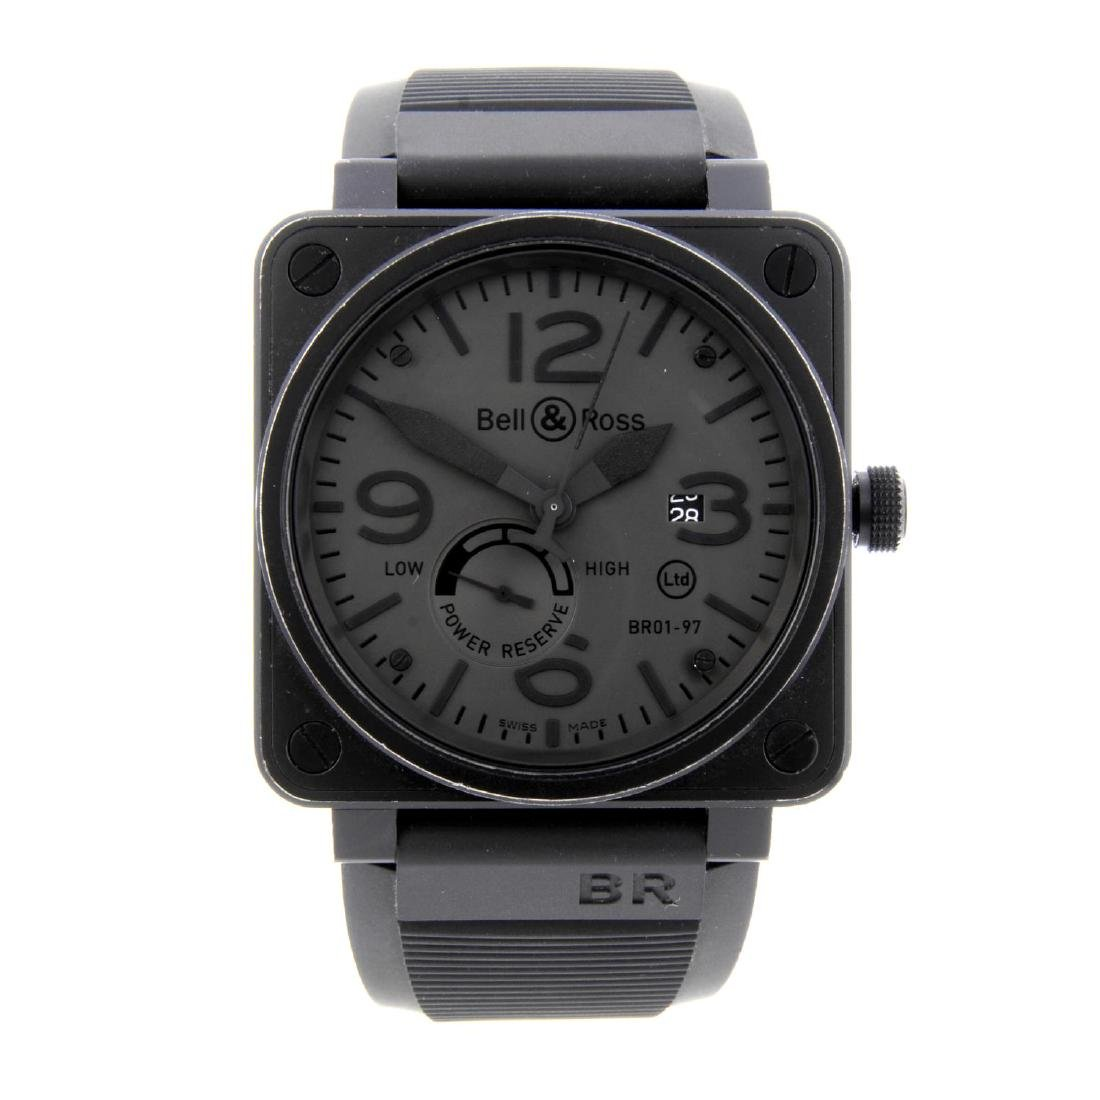 BELL & ROSS - a limited edition gentleman's Commando